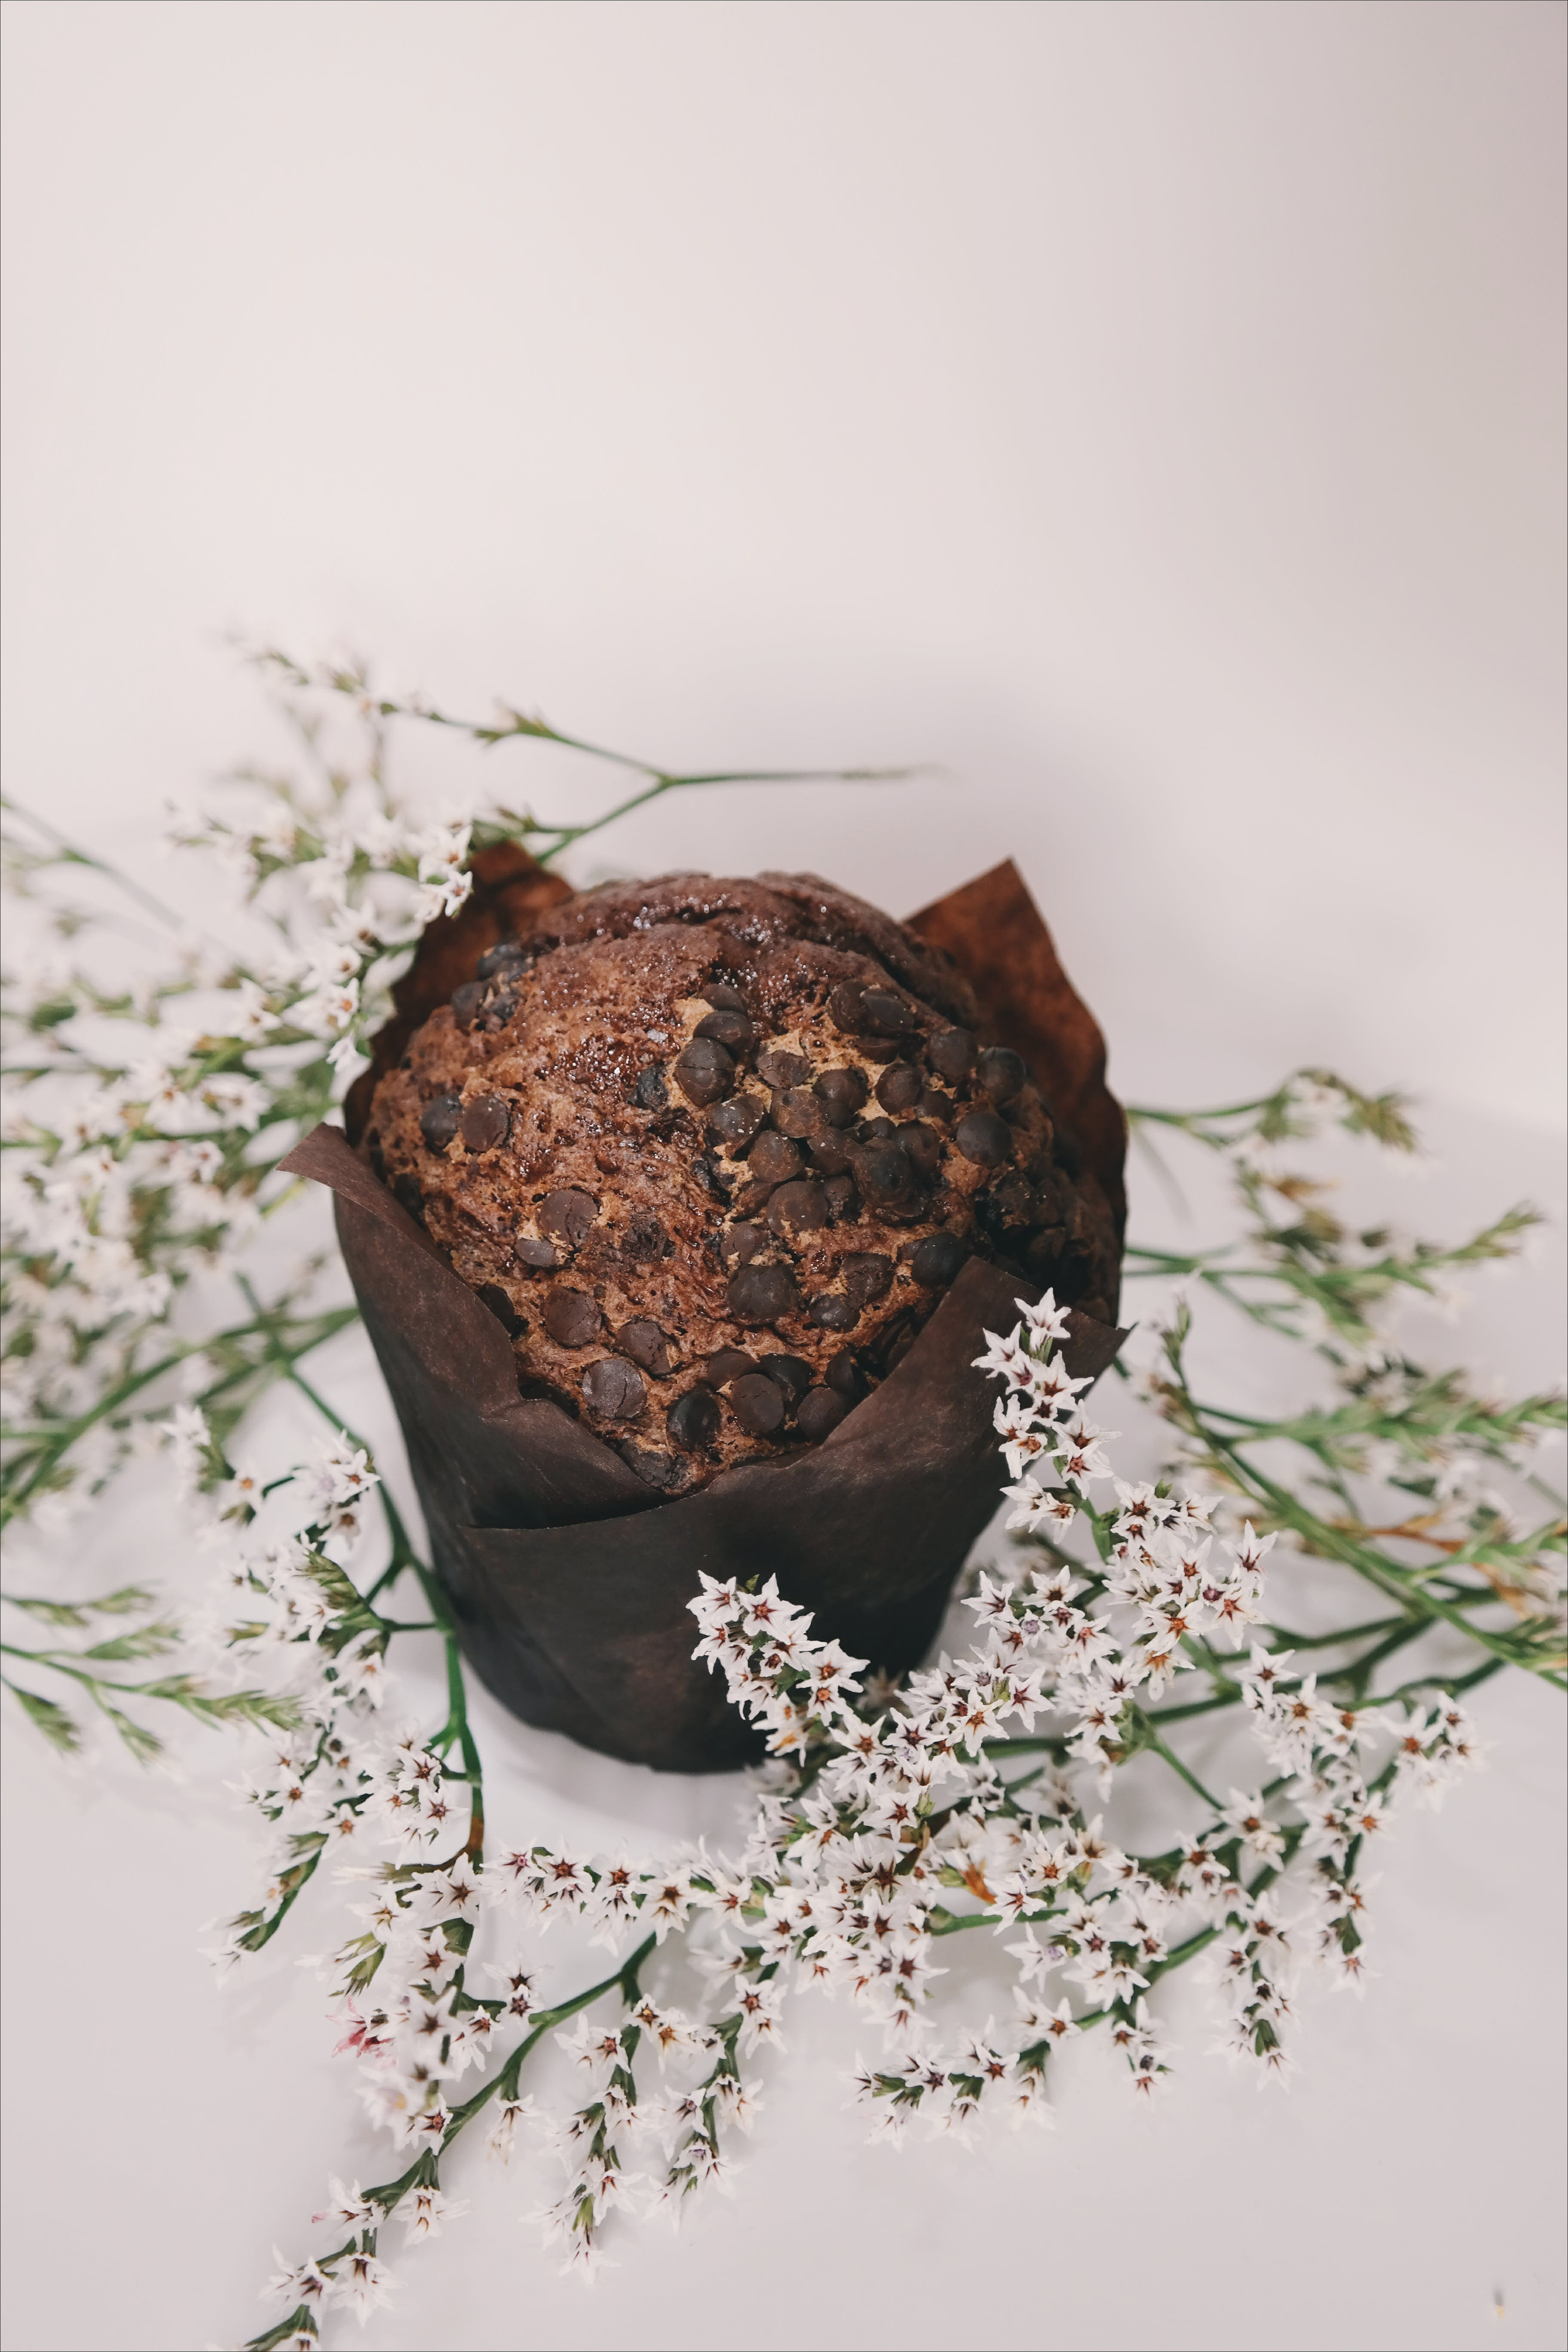 Chocolate Muffin Top With Chocolate Chips